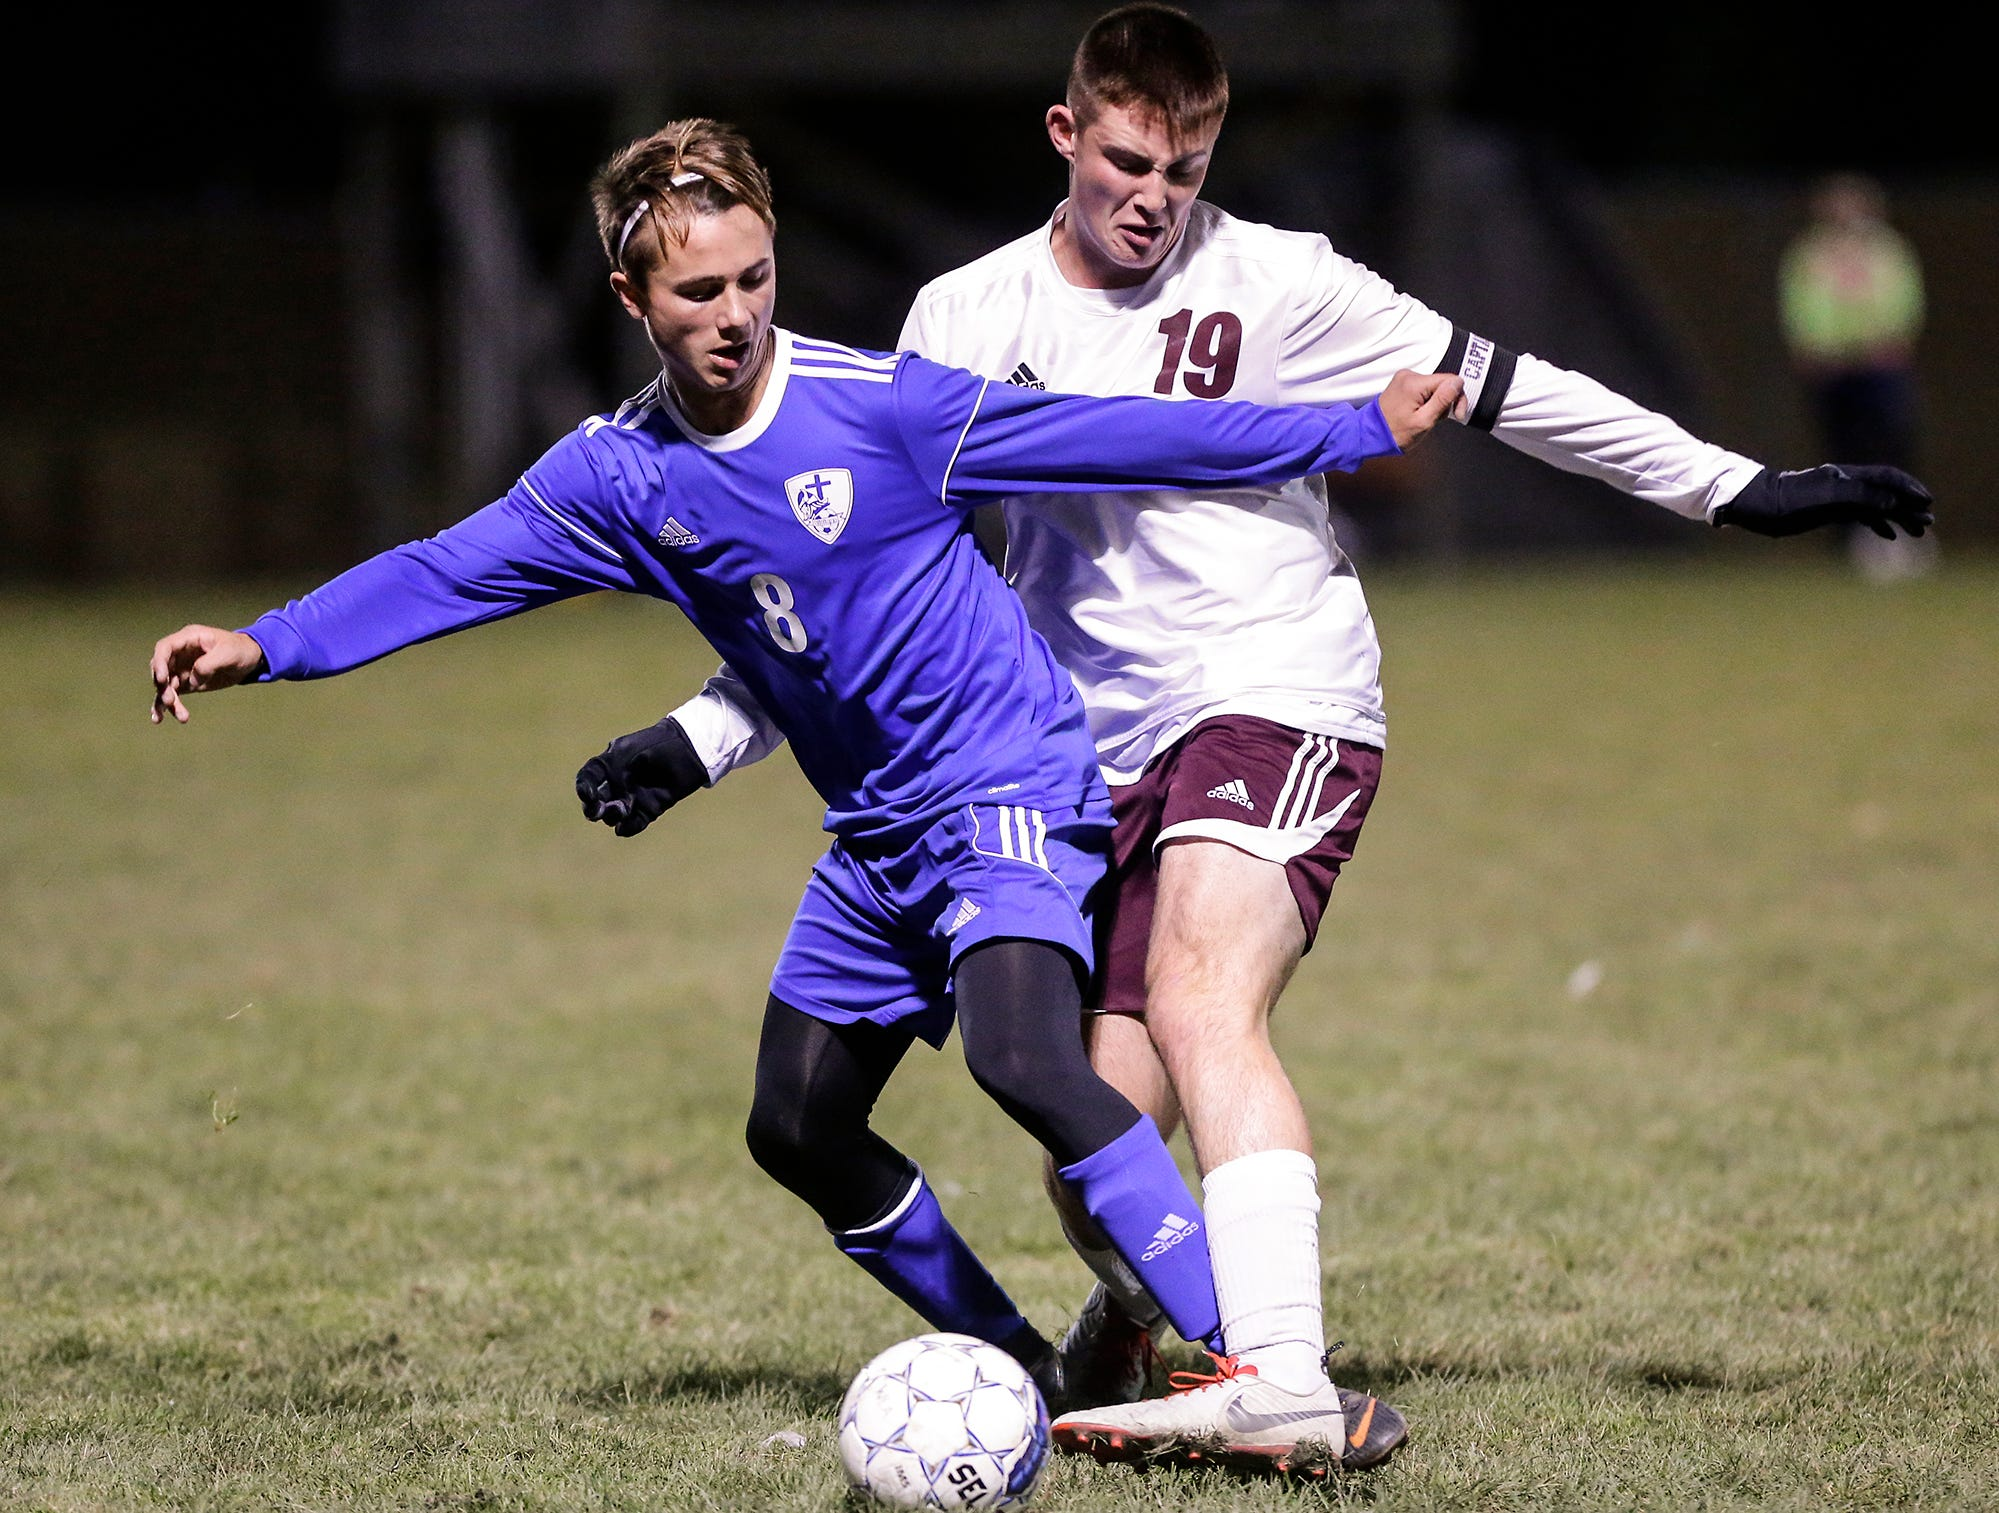 Winnebago Lutheran Academy soccer's Jack Rabe  battles for the ball against Omro High School's Evan Gitter during their WIAA regional playoff game Thursday, October 18, 2018 in Fond du Lac, Wisconsin. Doug Raflik/USA TODAY NETWORK-Wisconsin